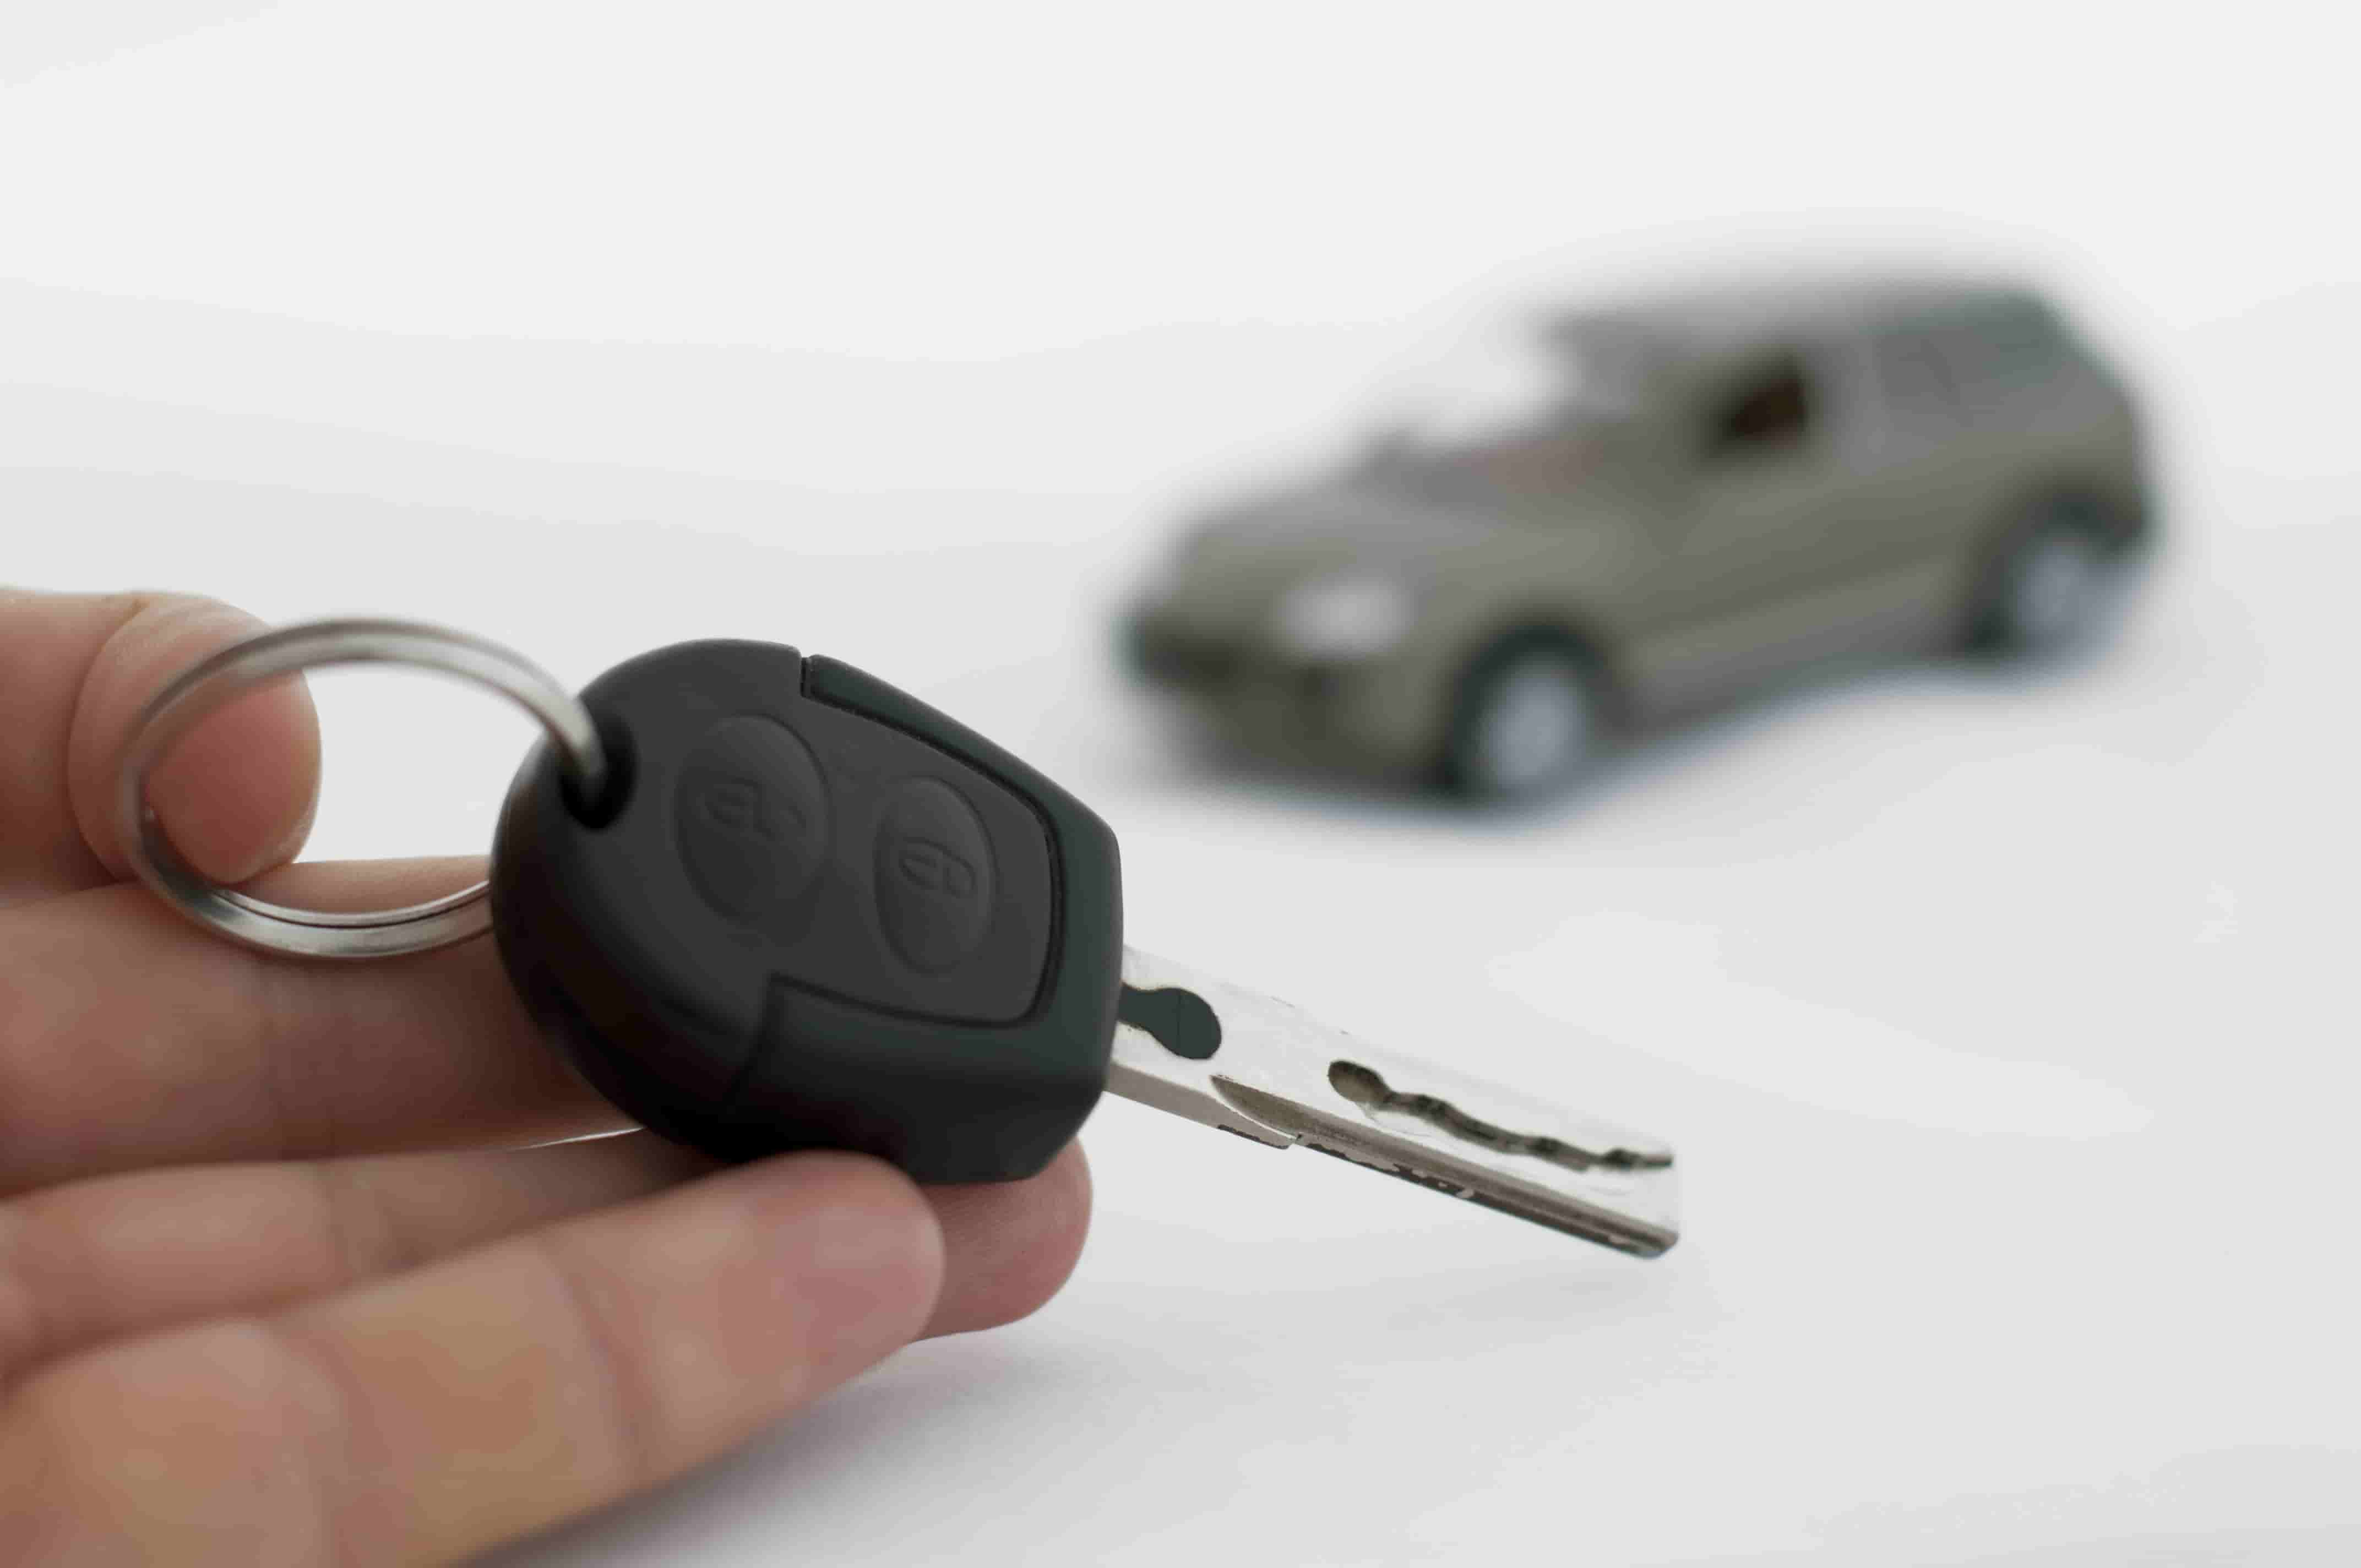 Hand holding keys and a car in the background